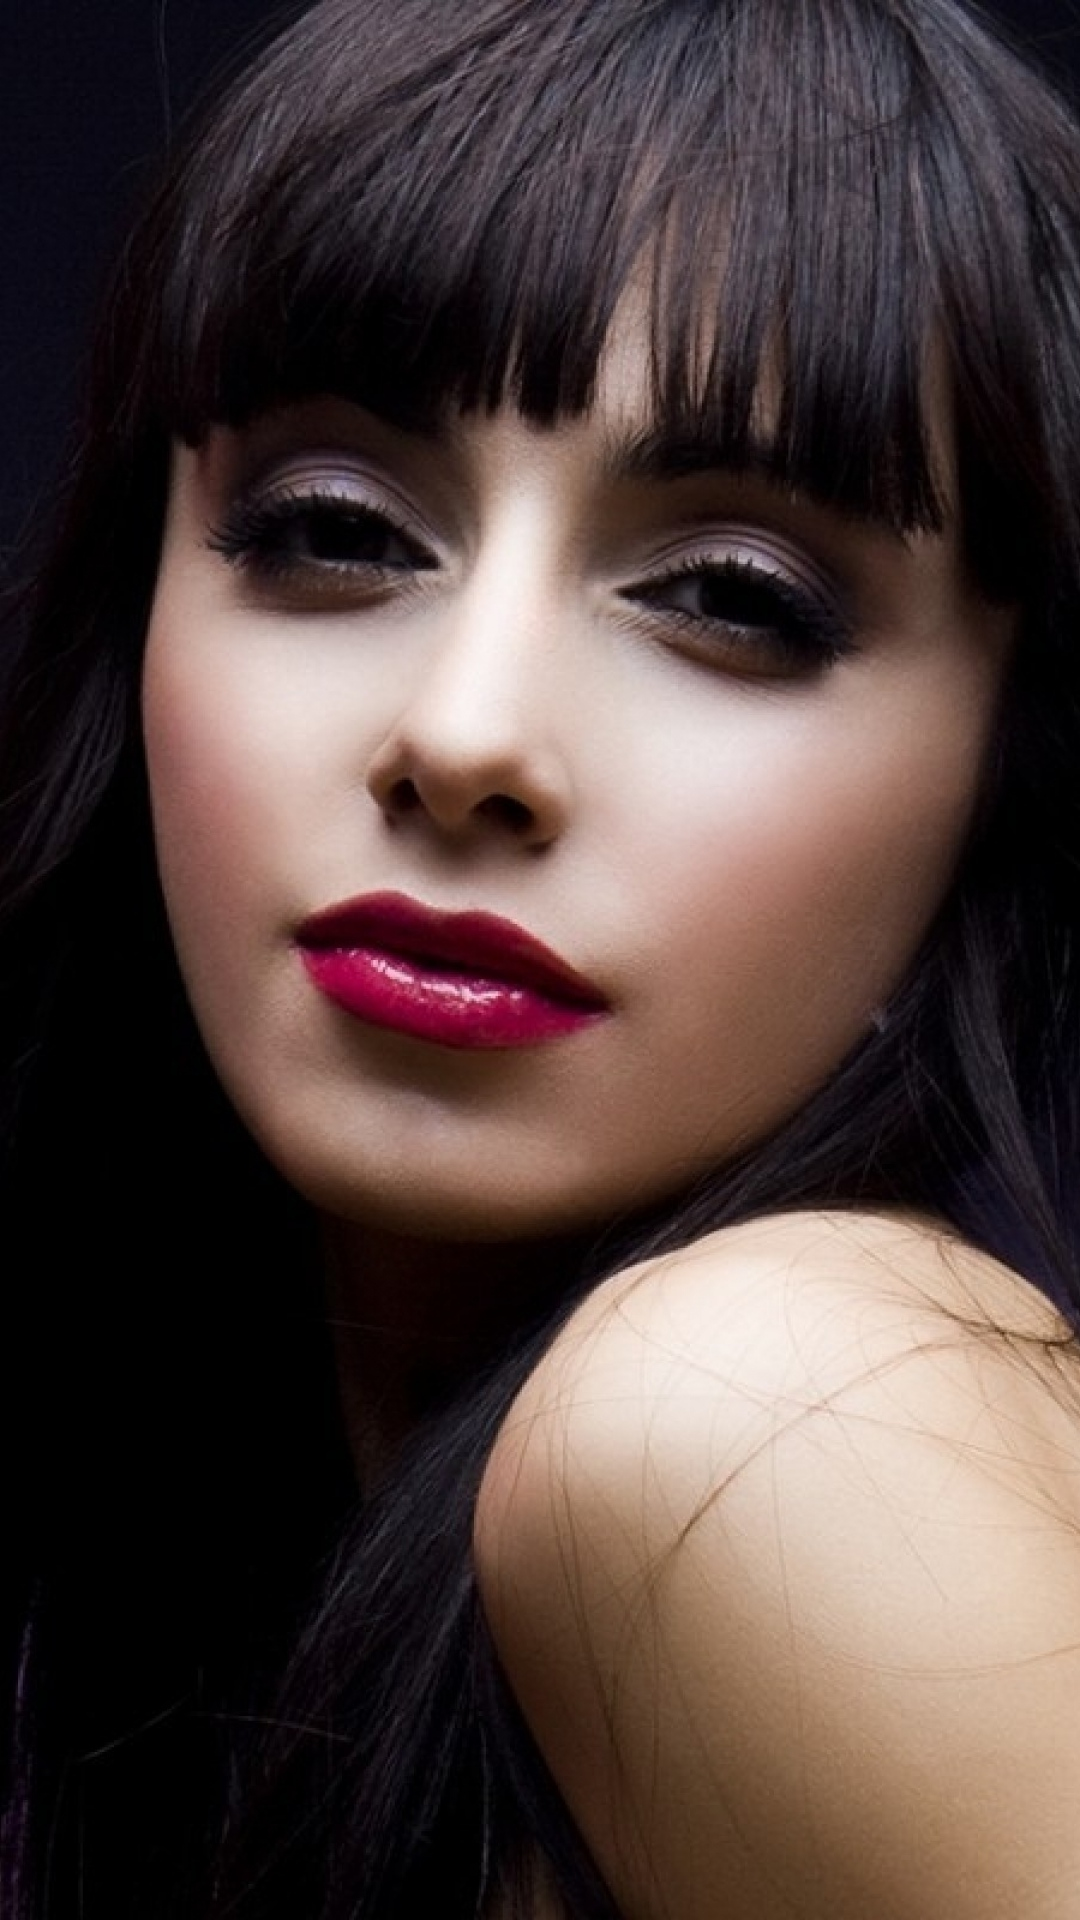 Girl Makeup: Best Htc One Wallpapers, Free And Easy To